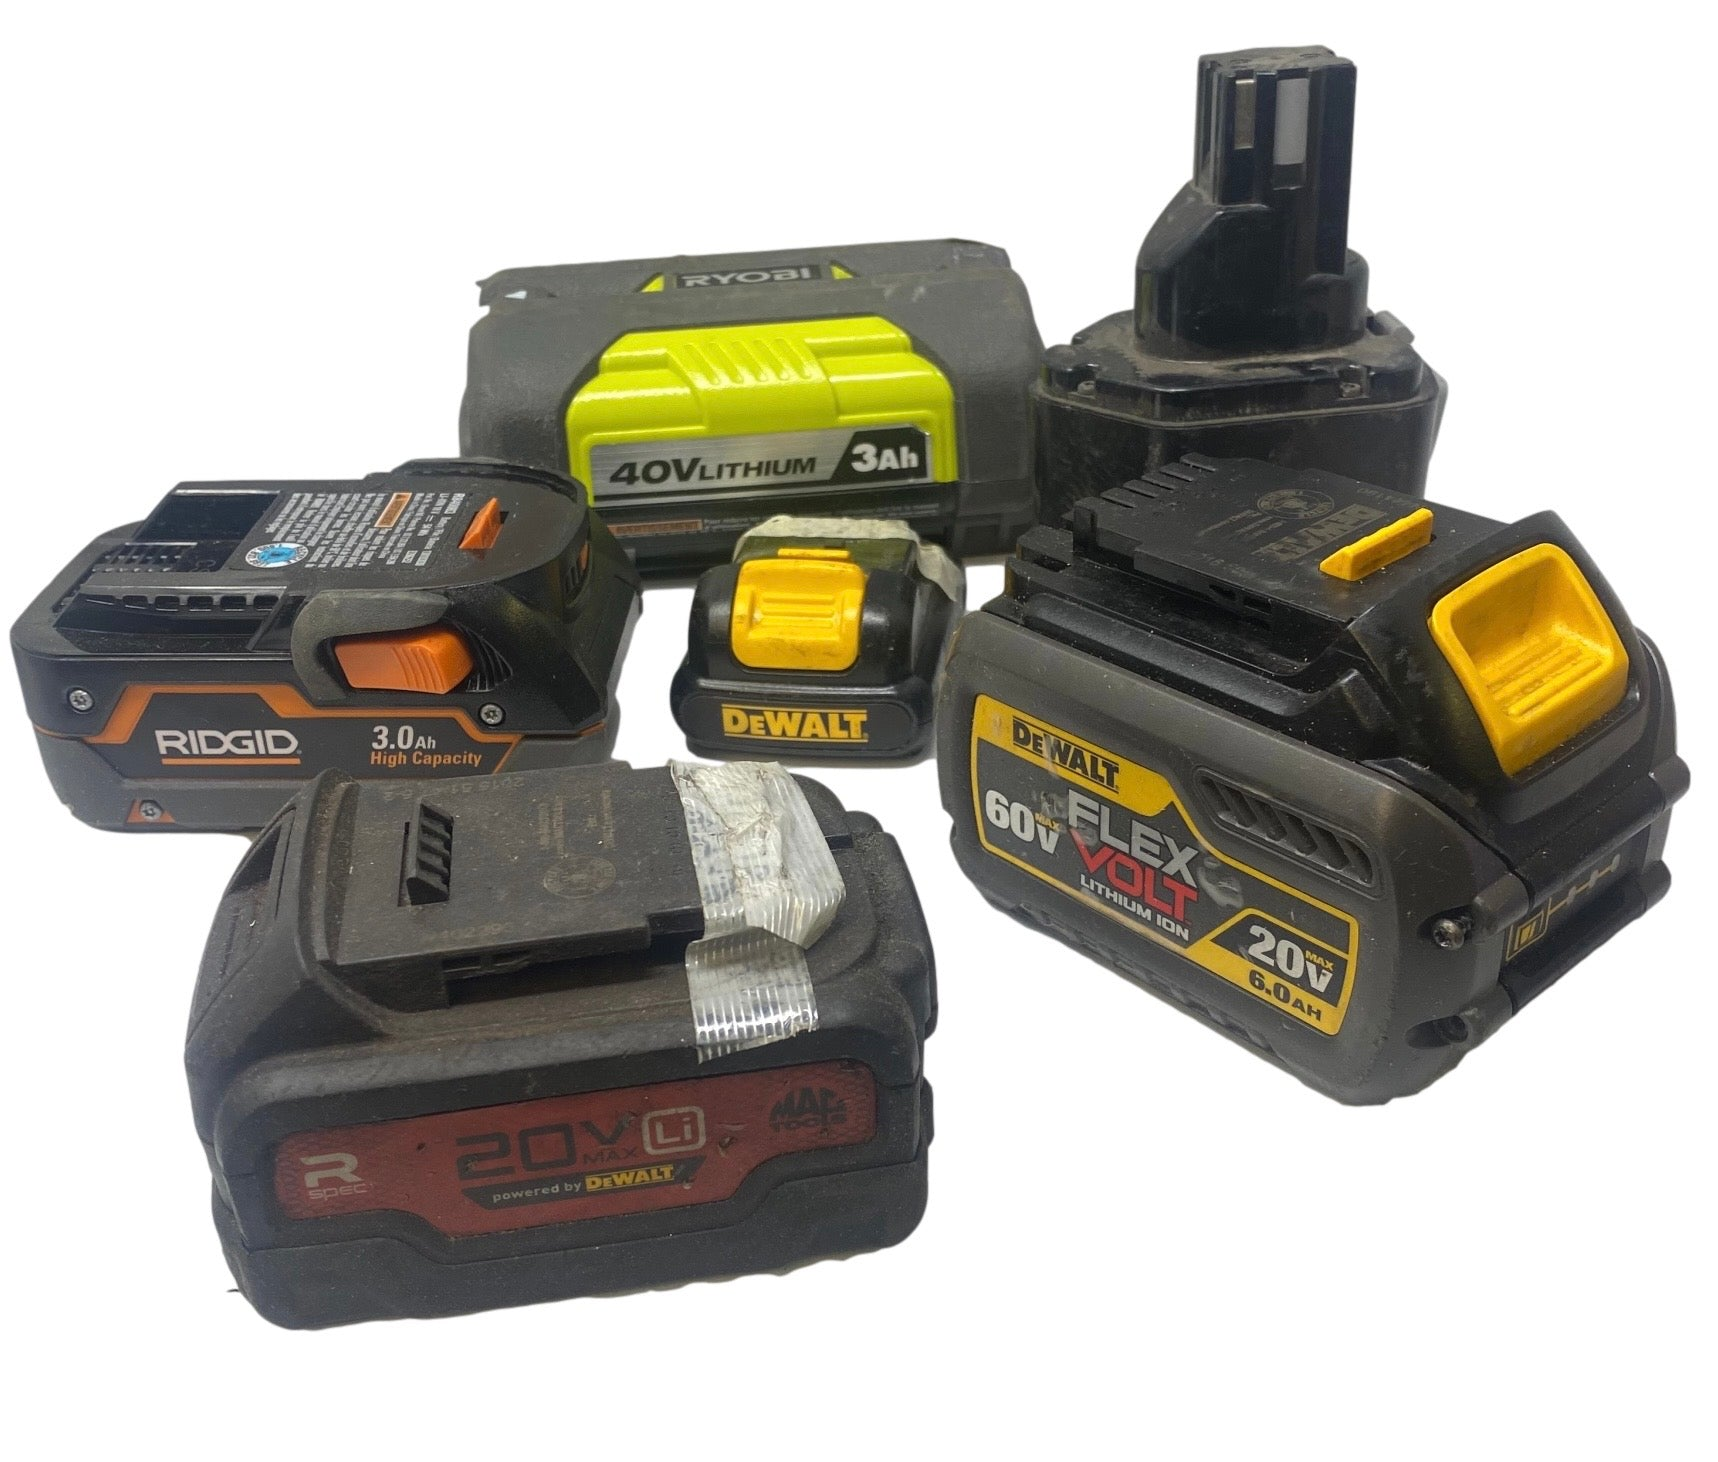 10 POUNDS OF MIXED TOOL BATTERIES - 50-60 CELLS